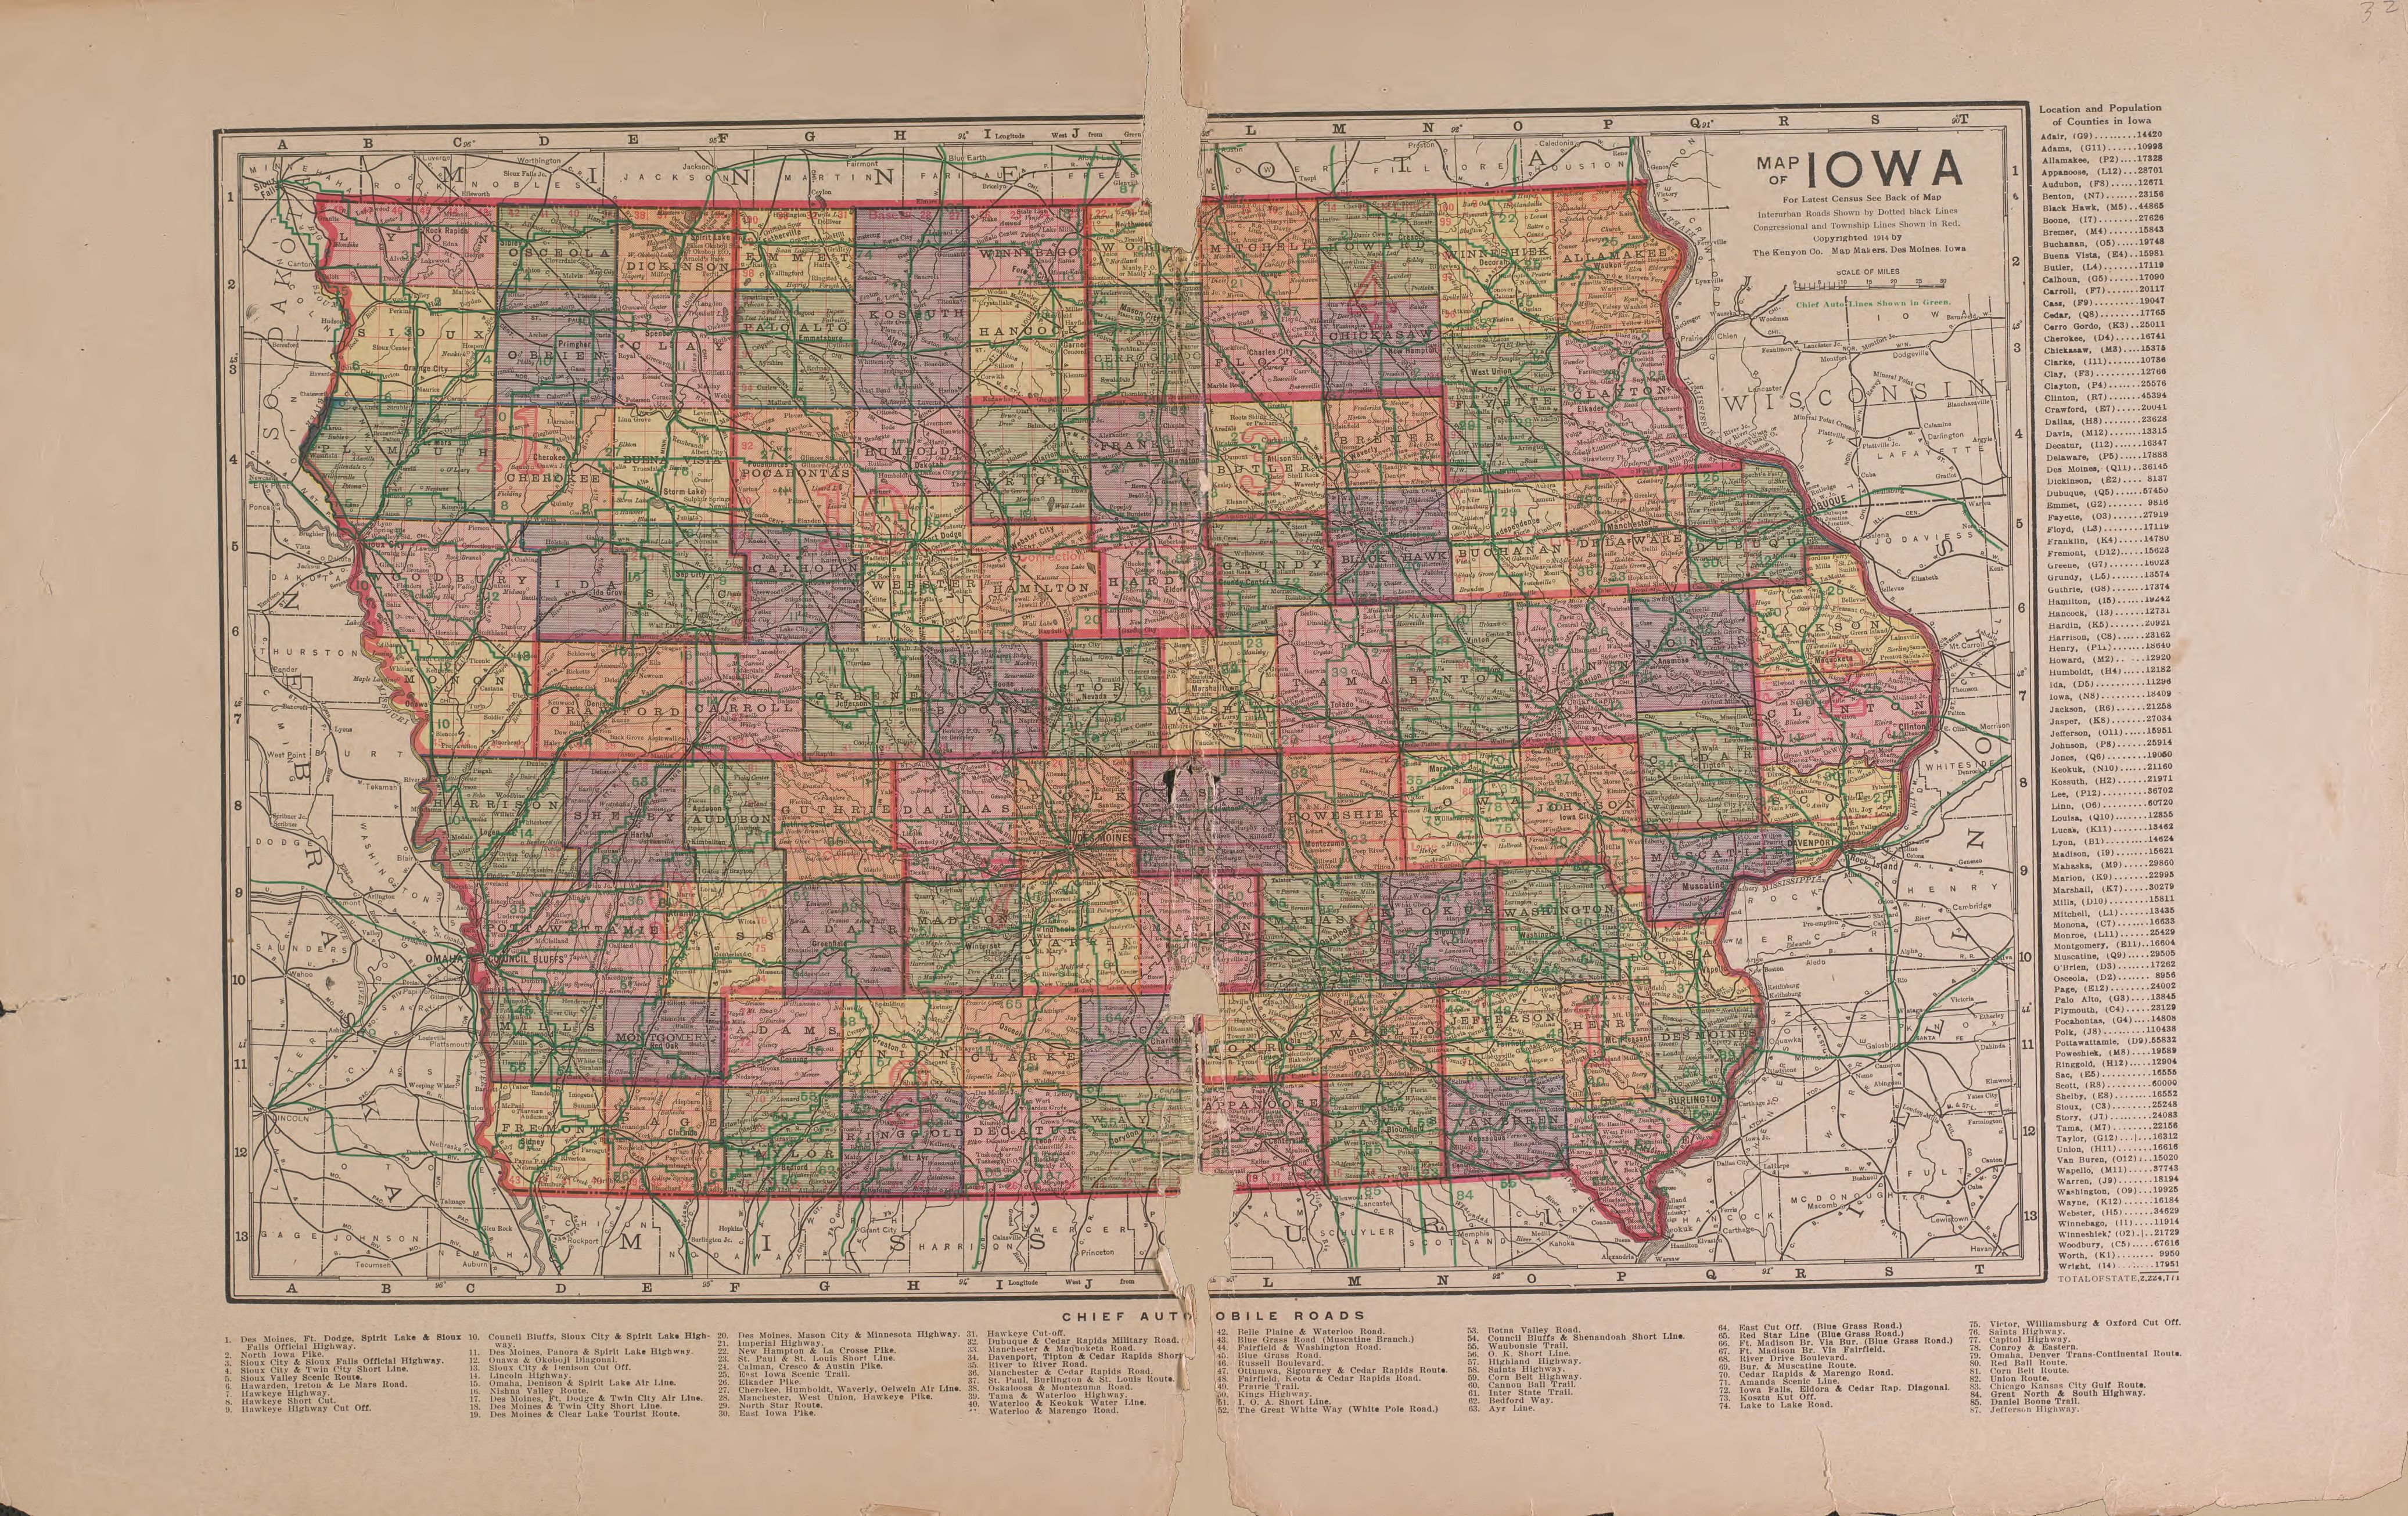 File:Atlas and plat book of Guthrie County, Iowa - containing